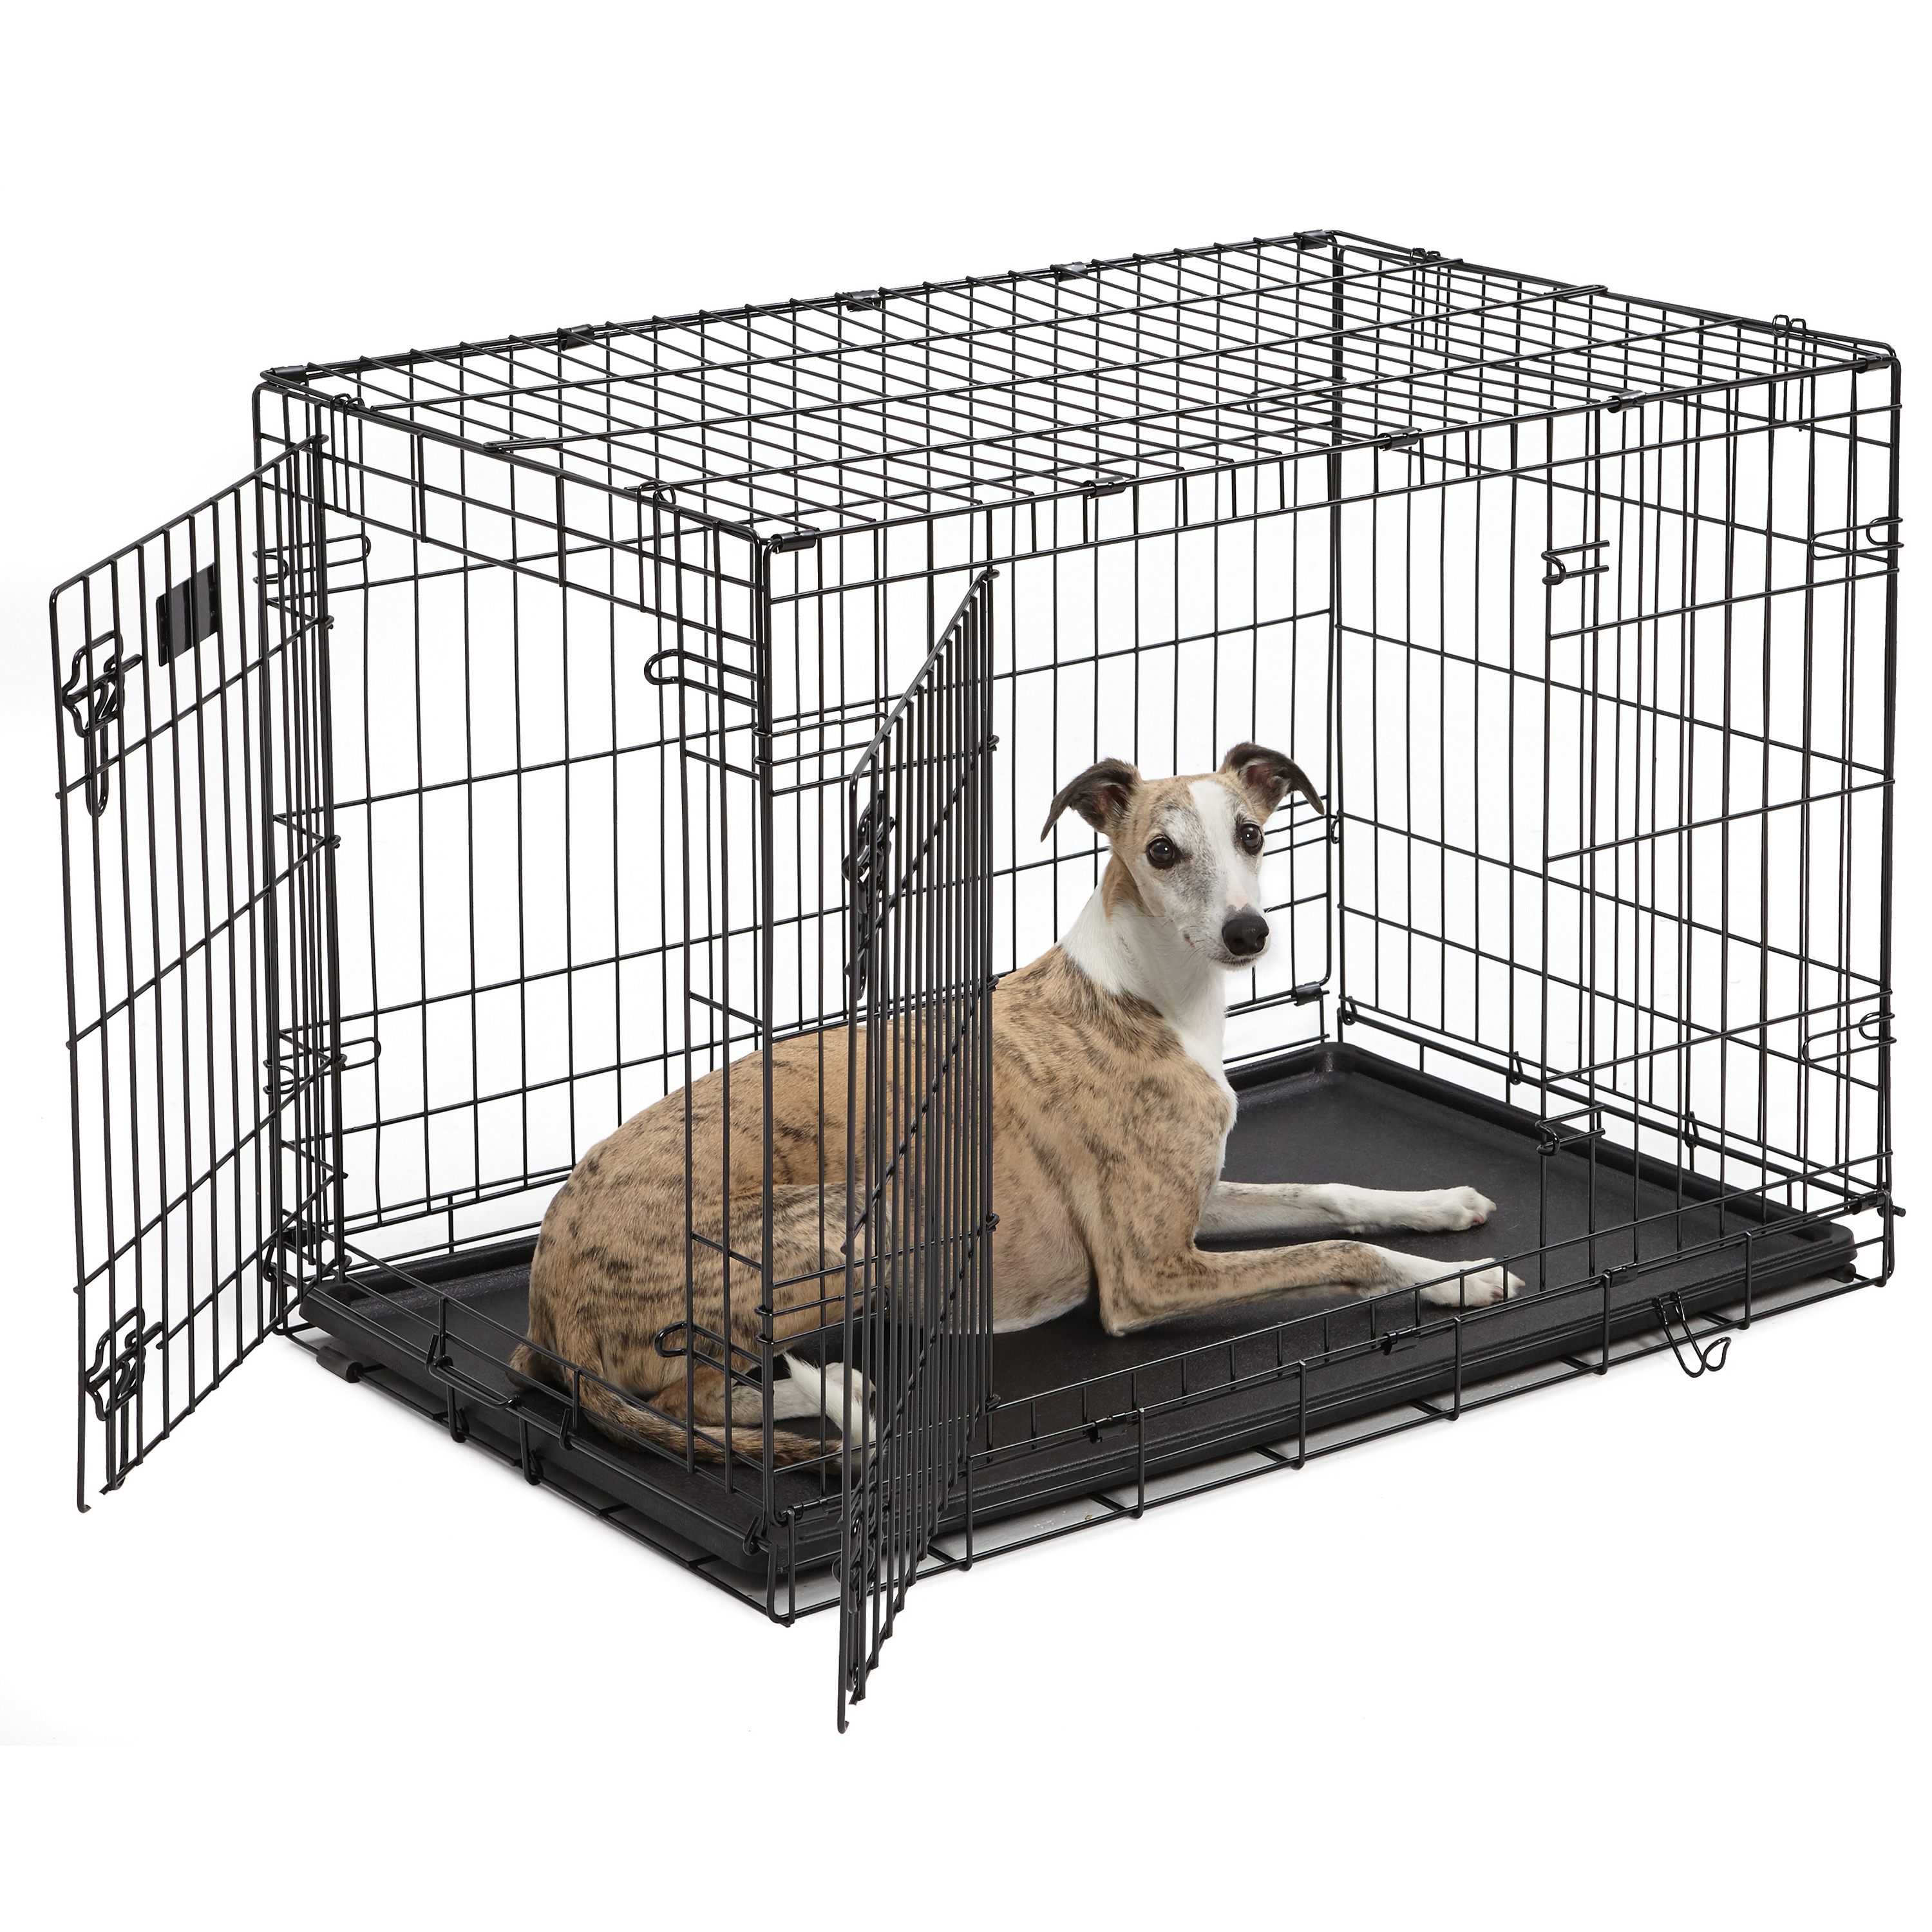 Double Door iCrate Metal Dog Crate, 36-Inch, Black